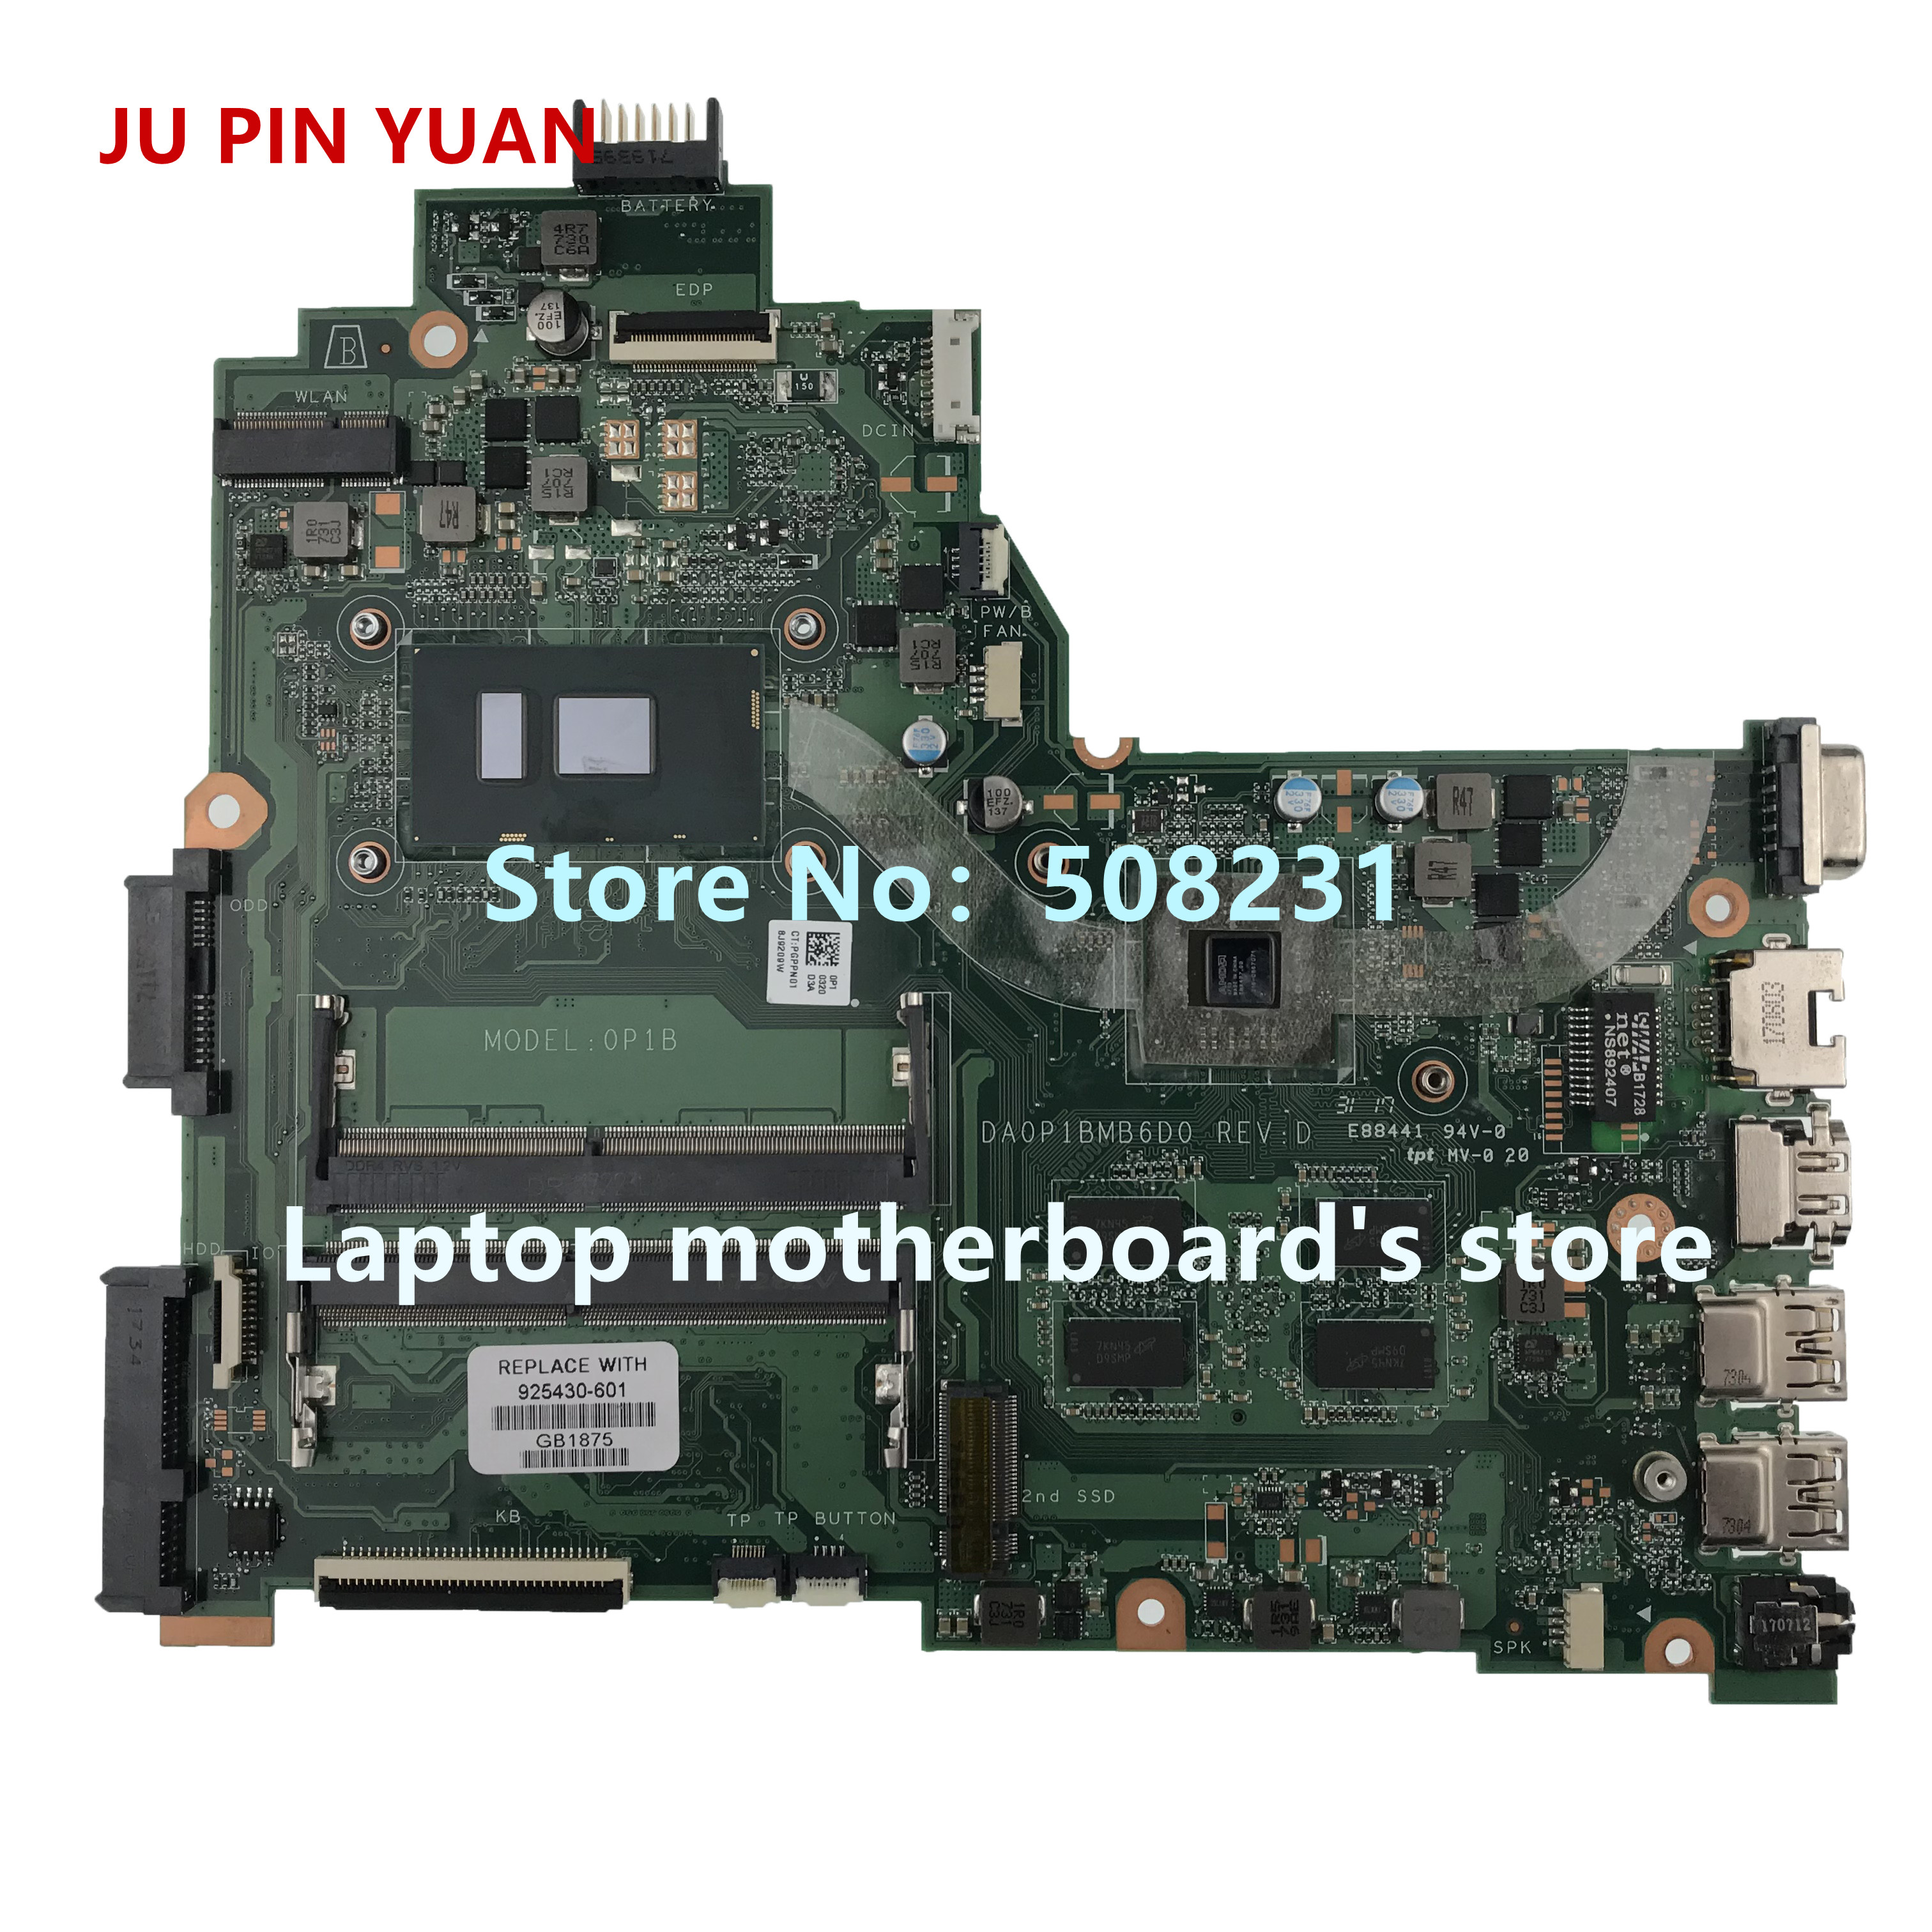 Laptop Accessories Ju Pin Yuan 925430-601 925430-001 For Hp Laptop 14-bs Laptop Motherboard Da0p1bmb6d0 With 520 4gb I5-7200u 100% Fully Tested Easy To Repair